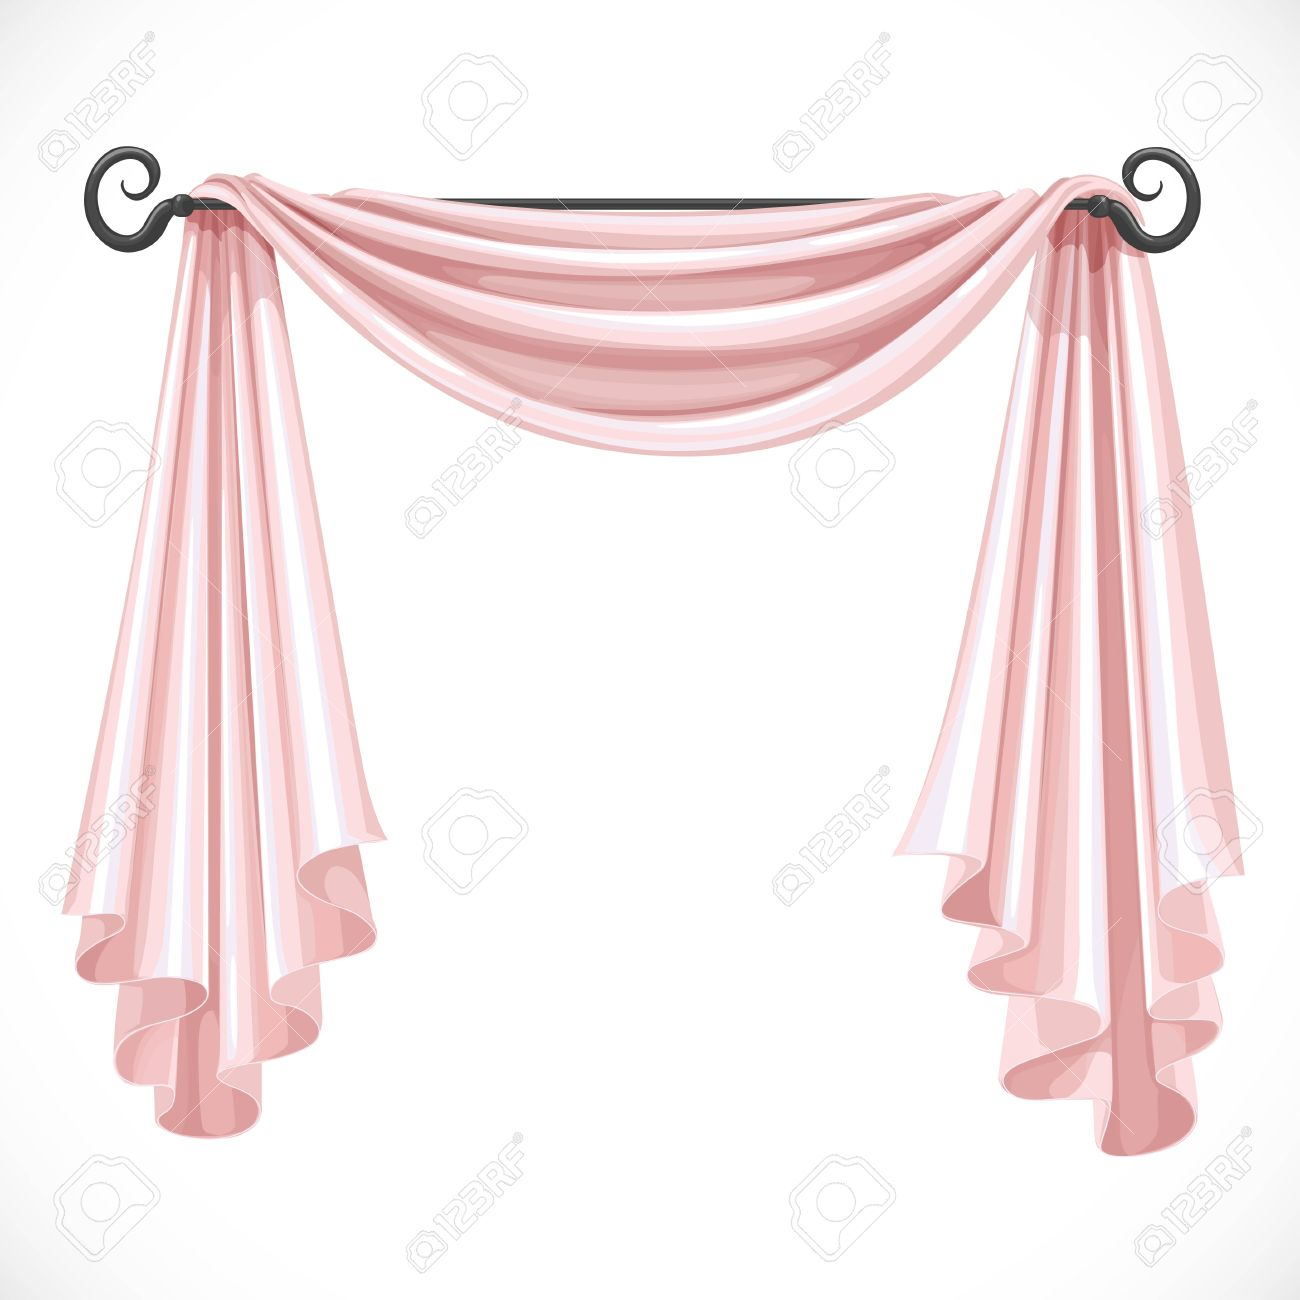 Royalty free or white curtain background drapes royalty free stock - Pink Curtains On The Ledge Forged Isolated On A White Background Stock Vector 38370718